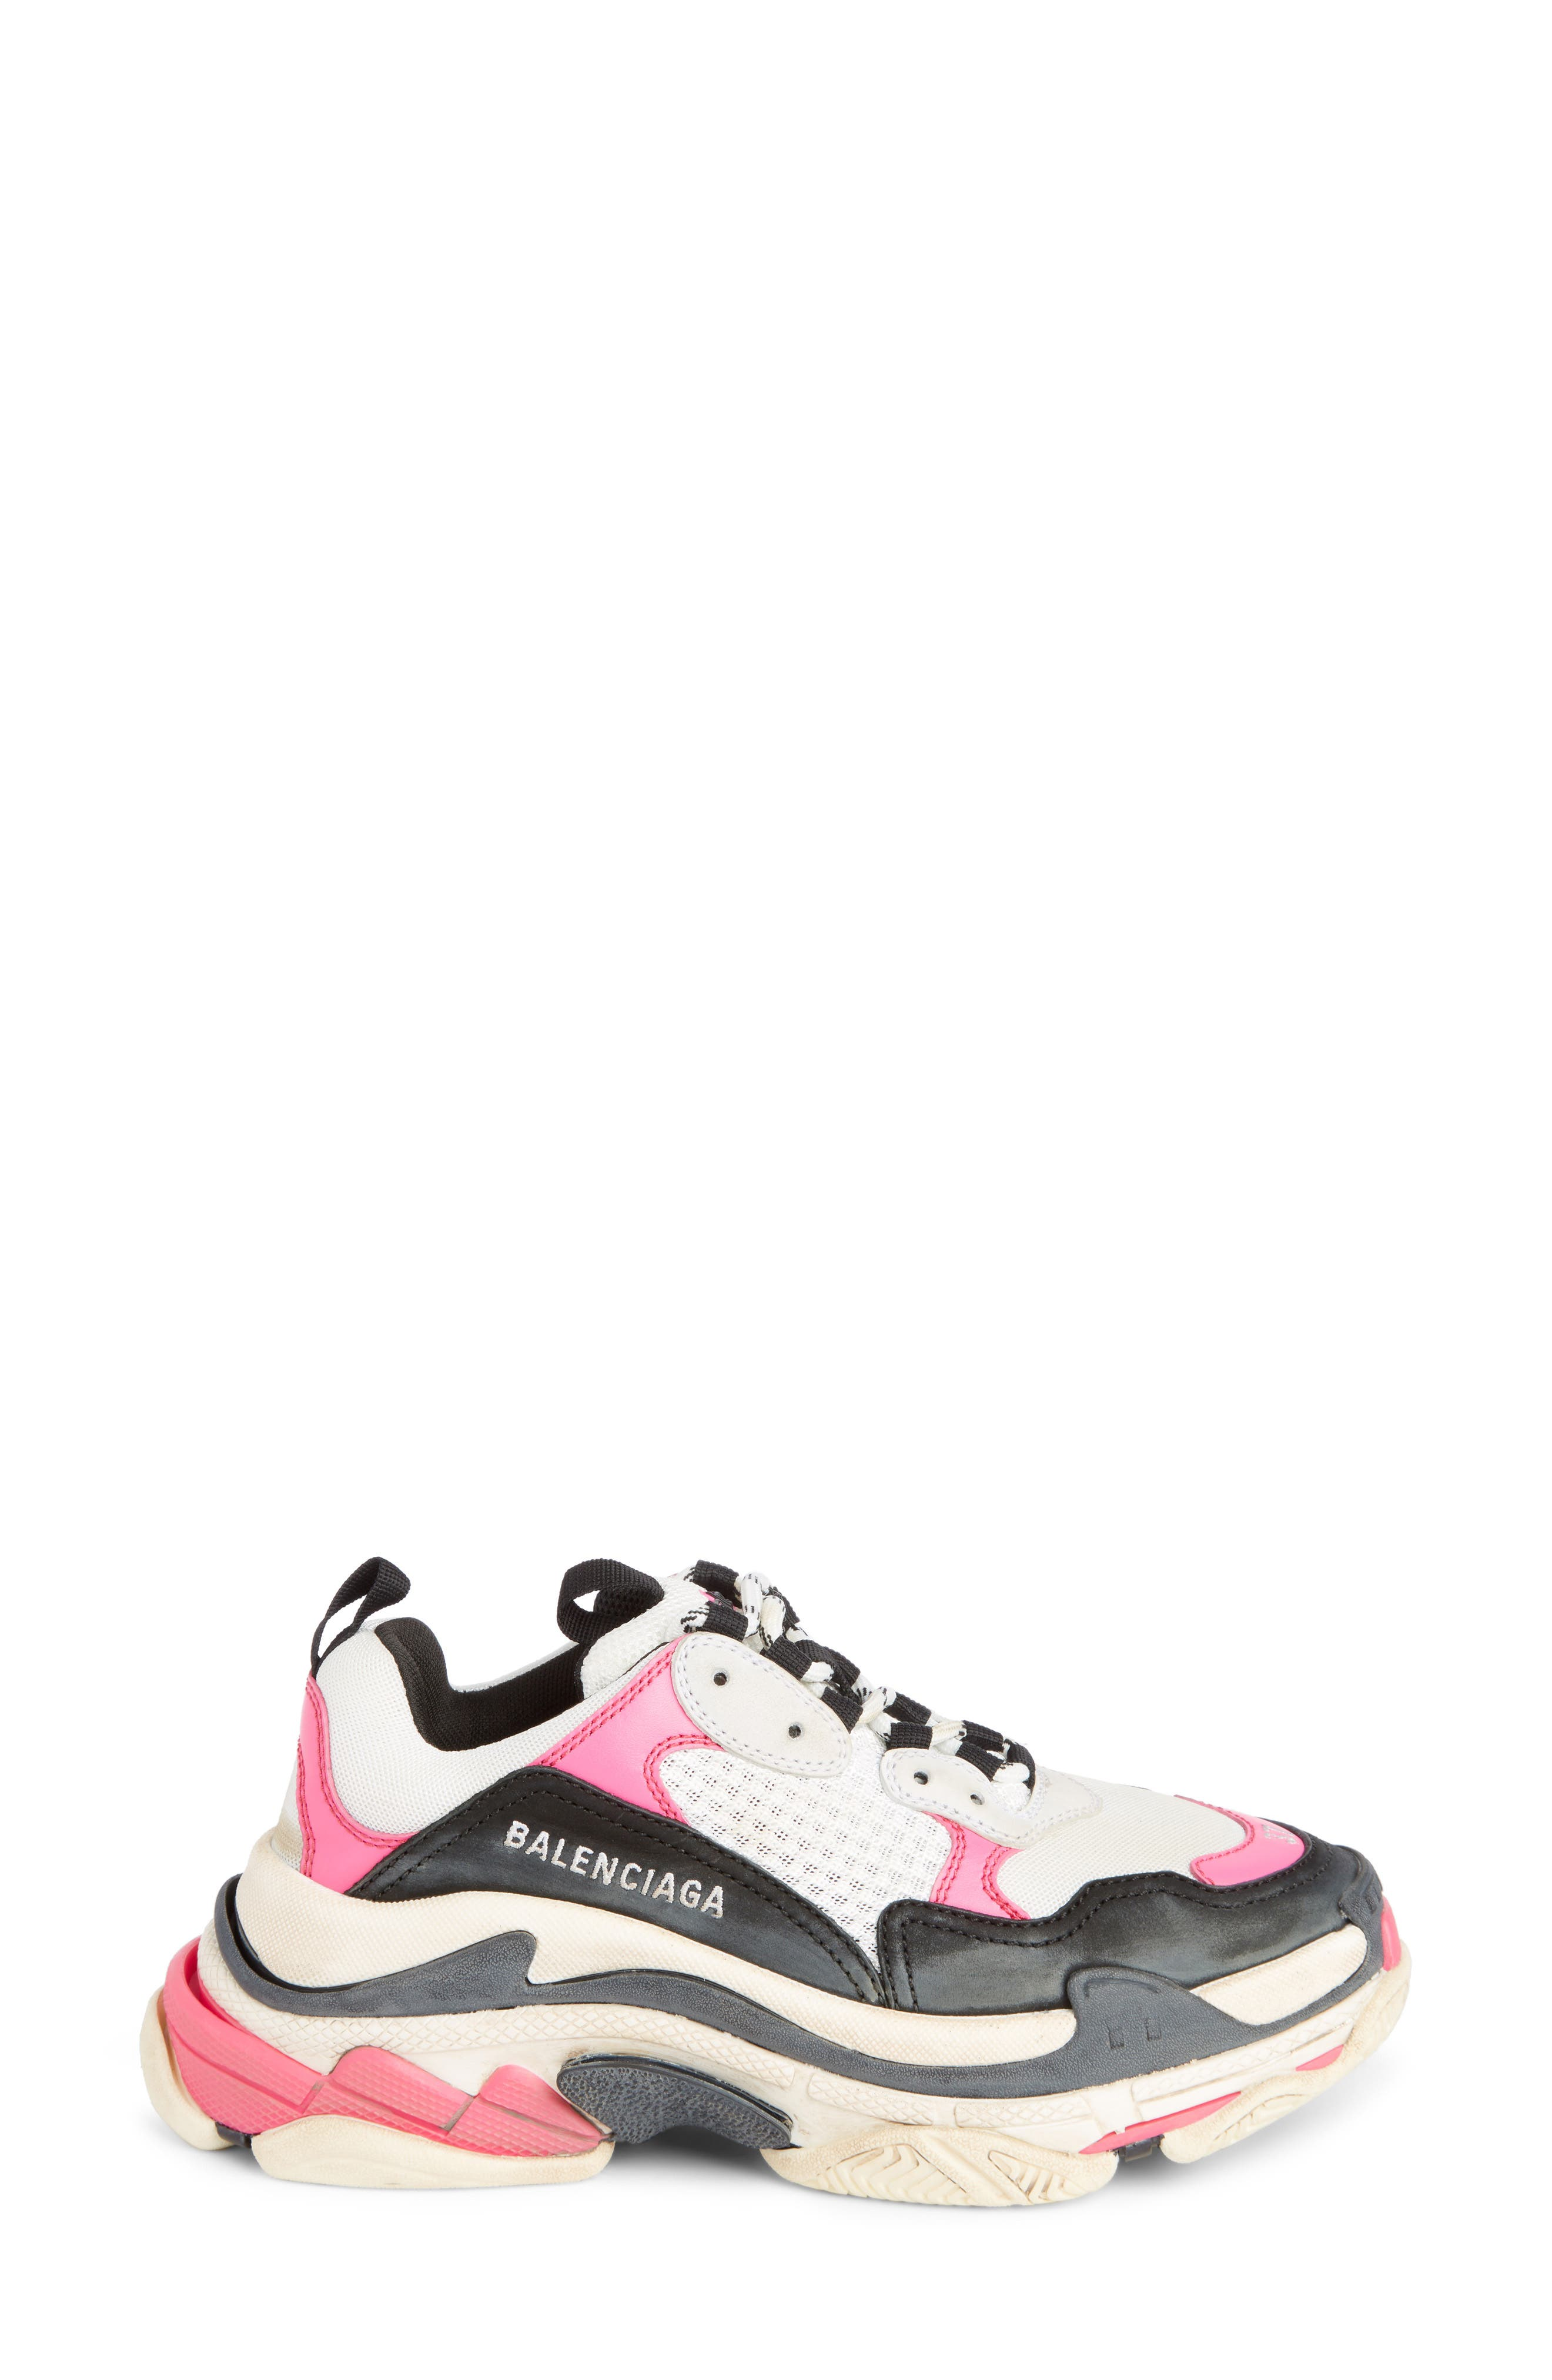 Triple S Low Top Sneaker,                             Alternate thumbnail 3, color,                             ROSE FLUO/ BLACK/ WHITE